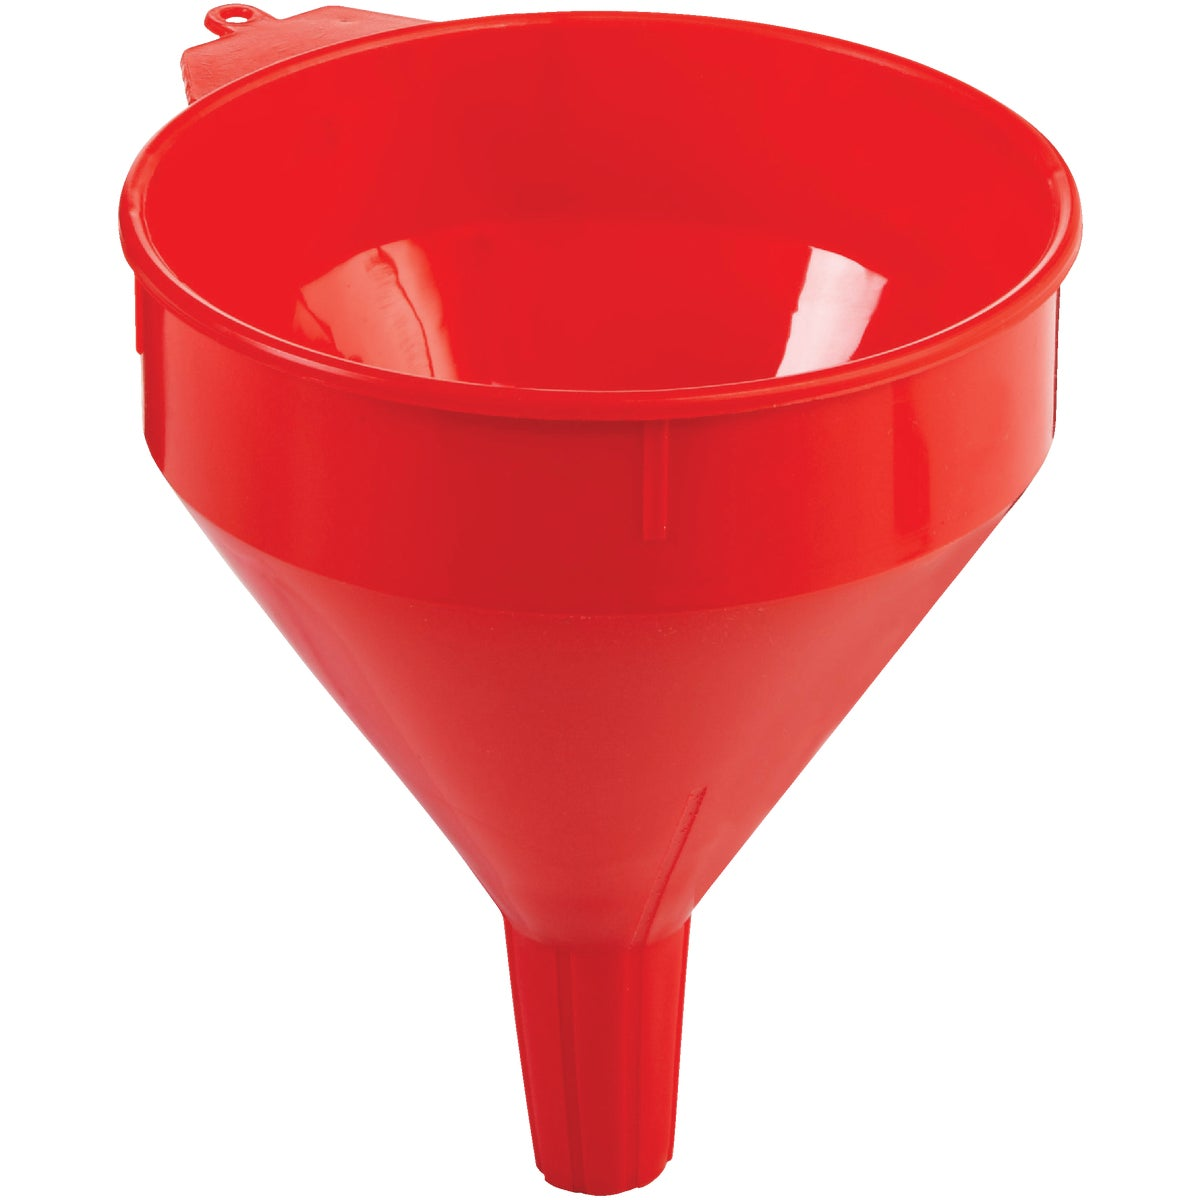 2QT PLASTIC FUNNEL - 75-070 by Plews  Lubrimatic